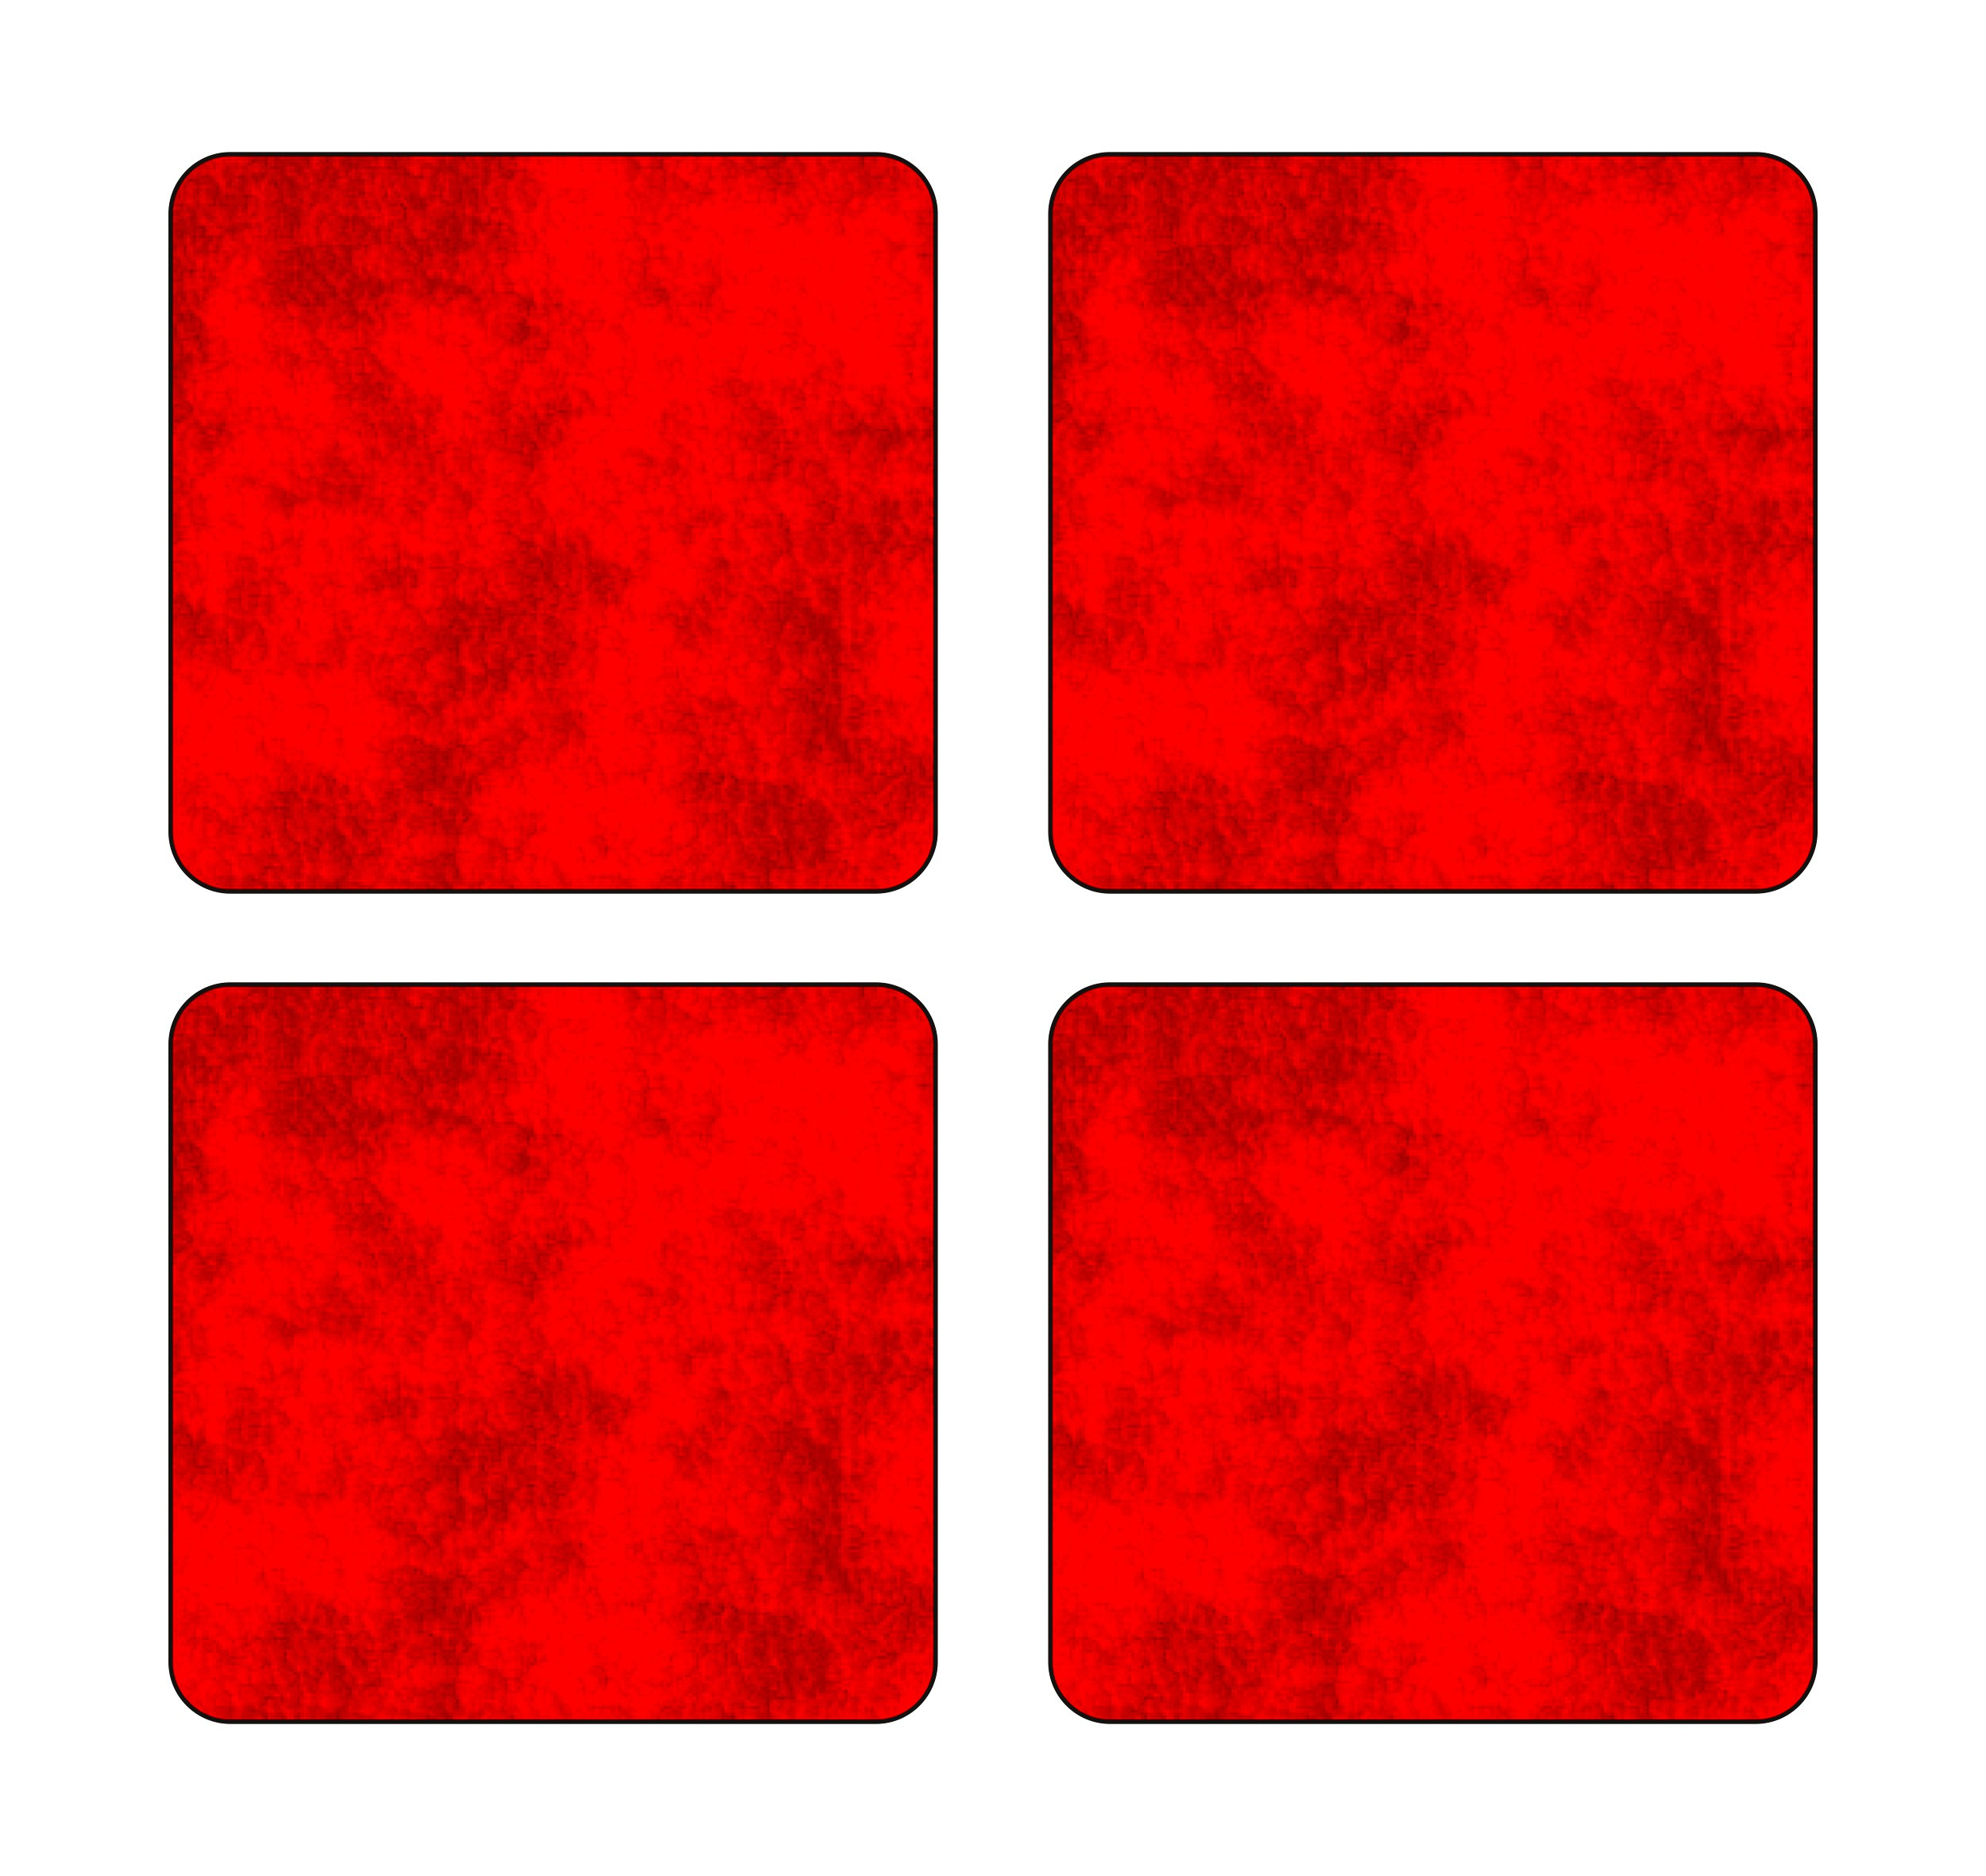 Sticker dimension holography-glow-reflectors 105 x 105 mm red